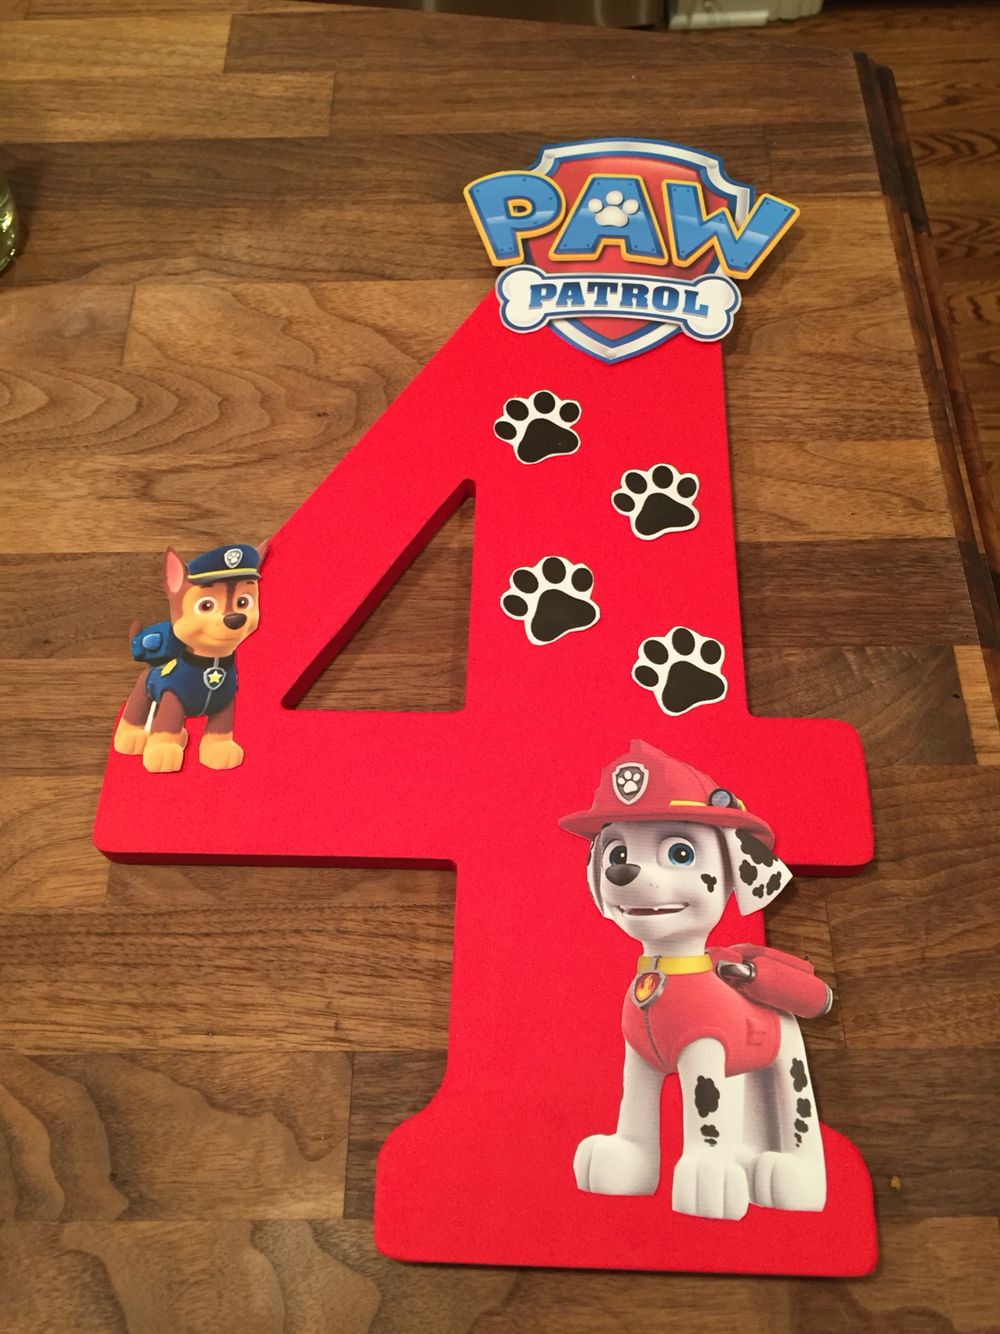 Pin by Muah 318 on Birthday Party Ideas Pinterest Paw patrol